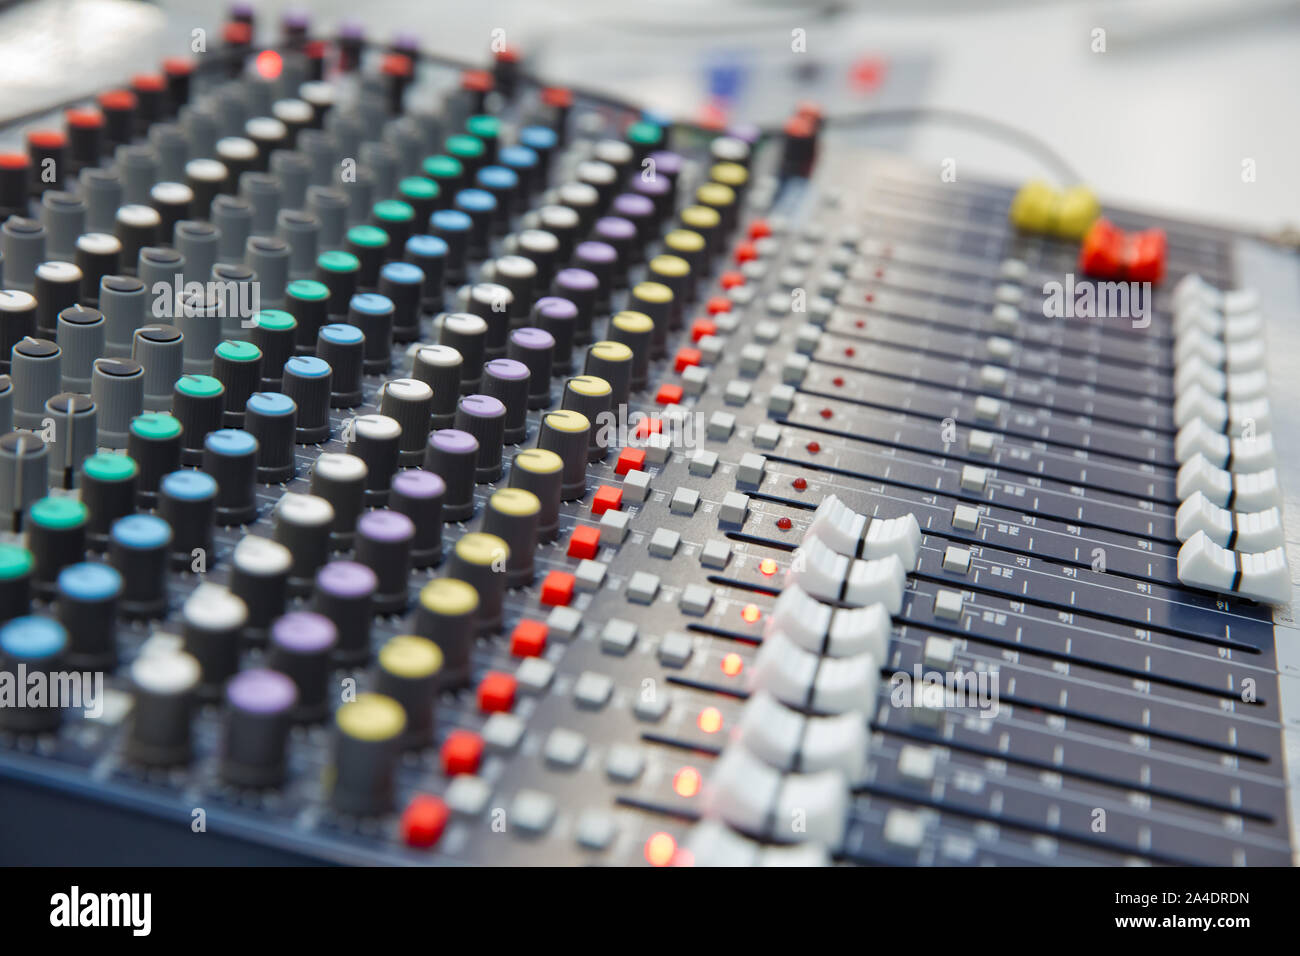 The part of Musical amplifier Sound amplifier or Music mixer with Knobs and Jack holes . Picture of Musical amplifier Sound amplifier or Music mixer w Stock Photo